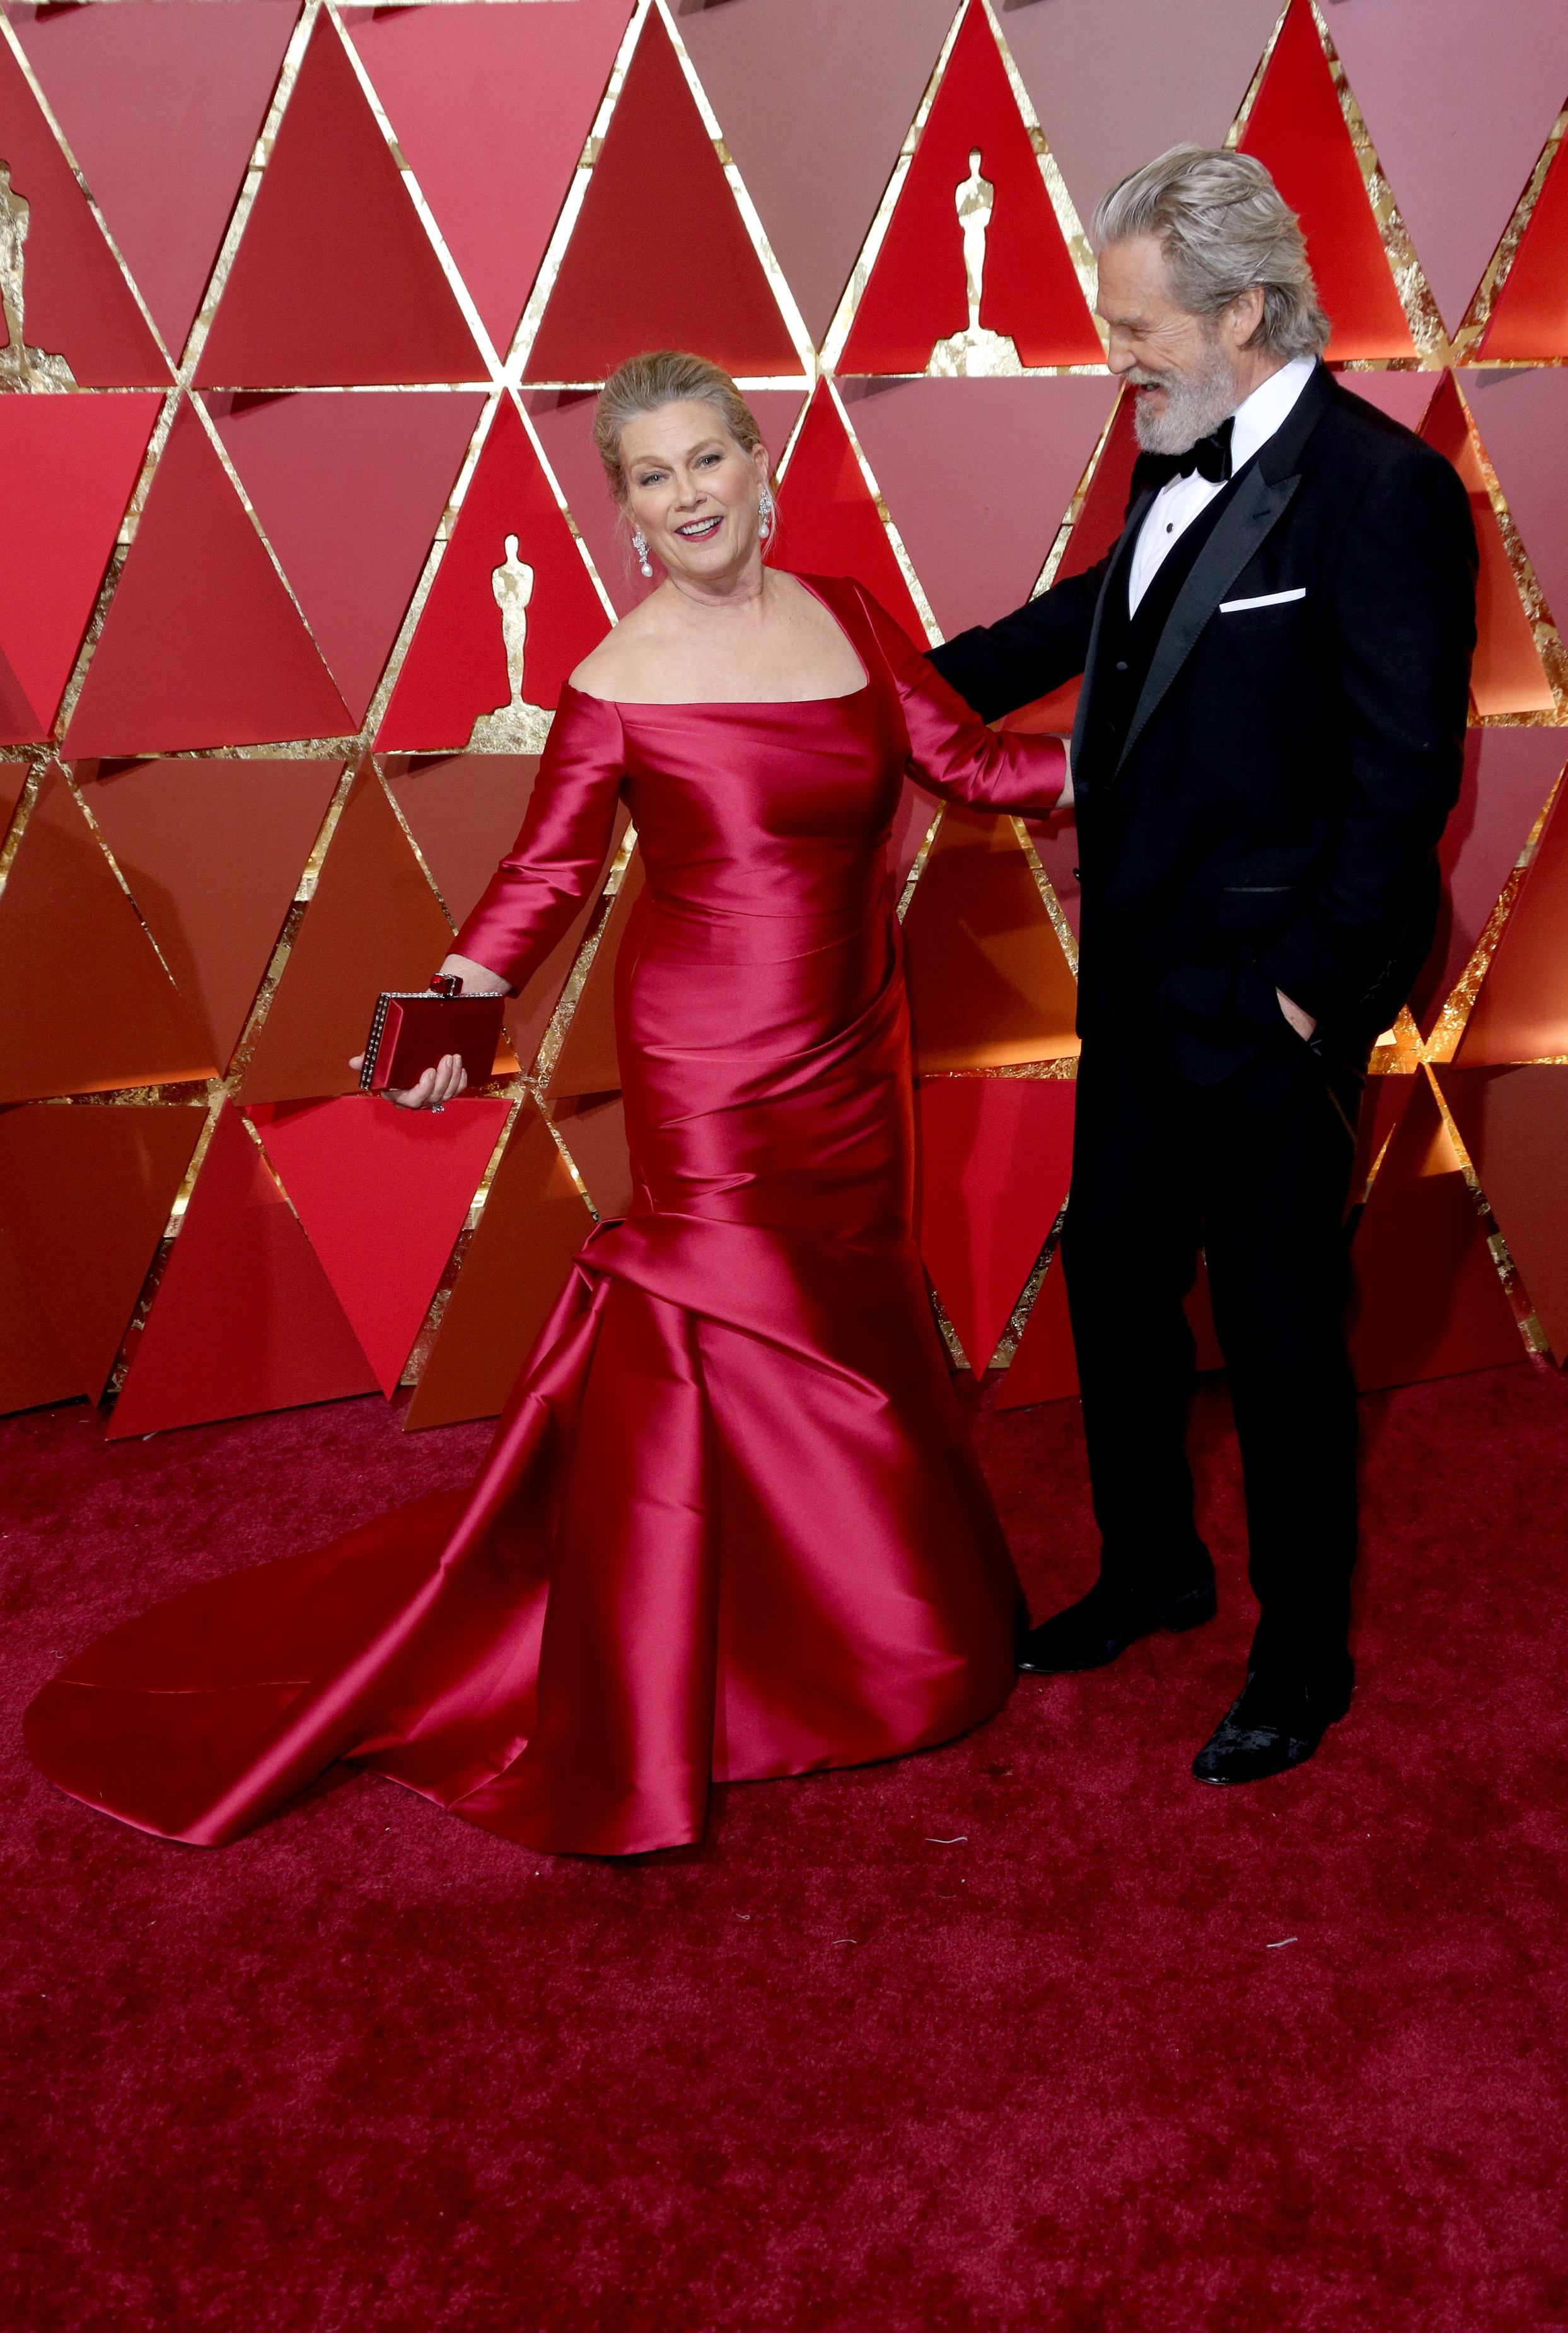 Mandatory Credit: Photo by Jim Smeal/BEI/Shutterstock (8434881od) Susan Geston and Jeff Bridges 89th Annual Academy Awards, Arrivals, Los Angeles, USA - 26 Feb 2017